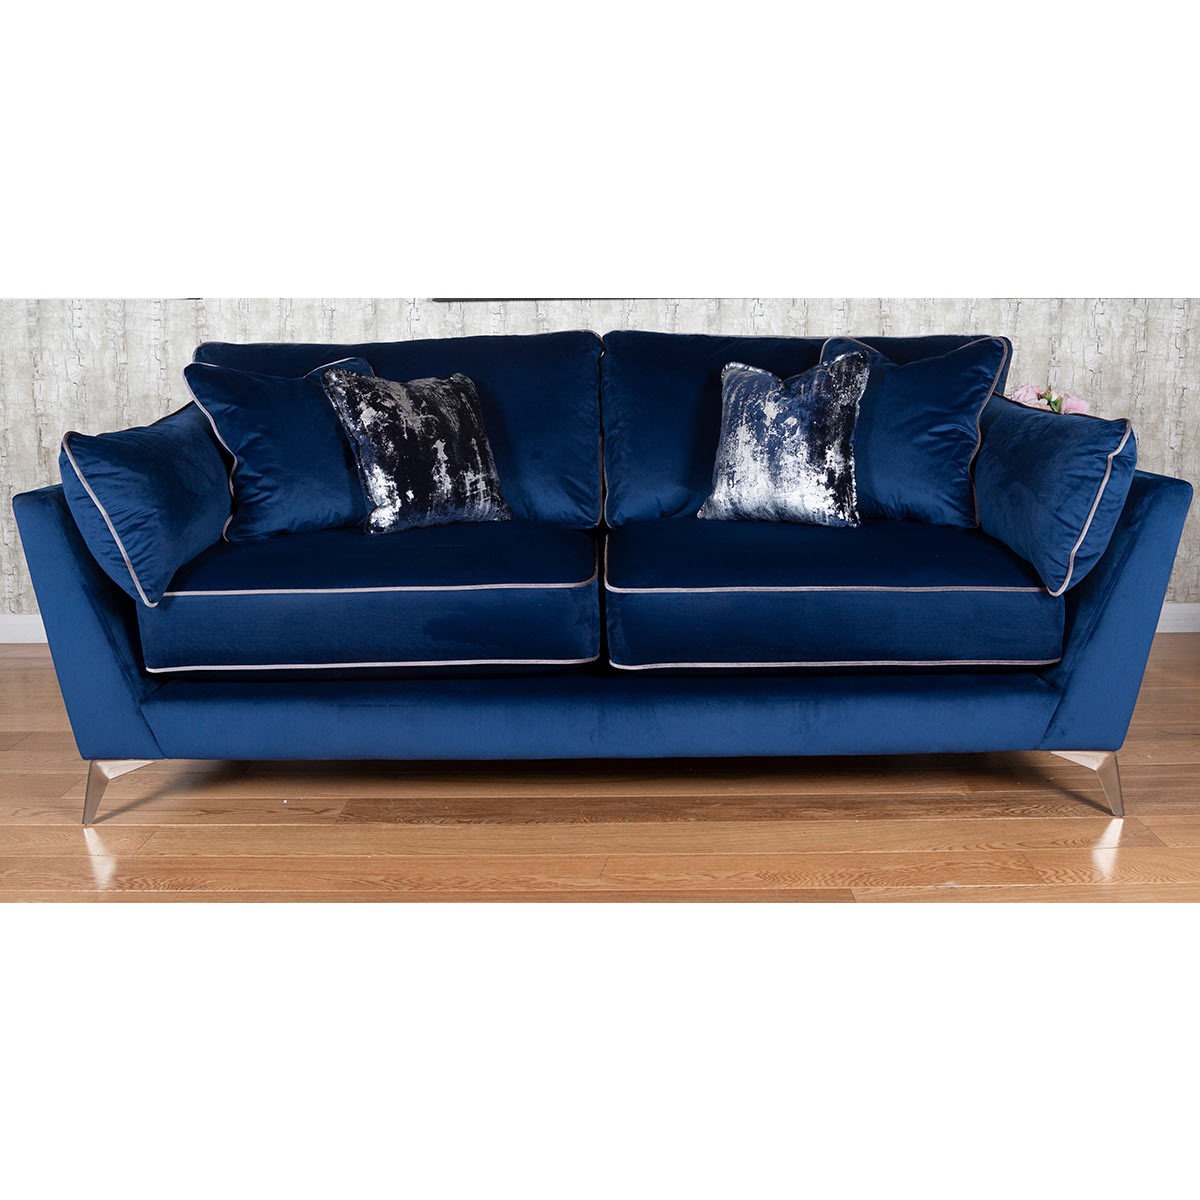 Roko Blue Velvet 3 Seater Sofa Costco Uk